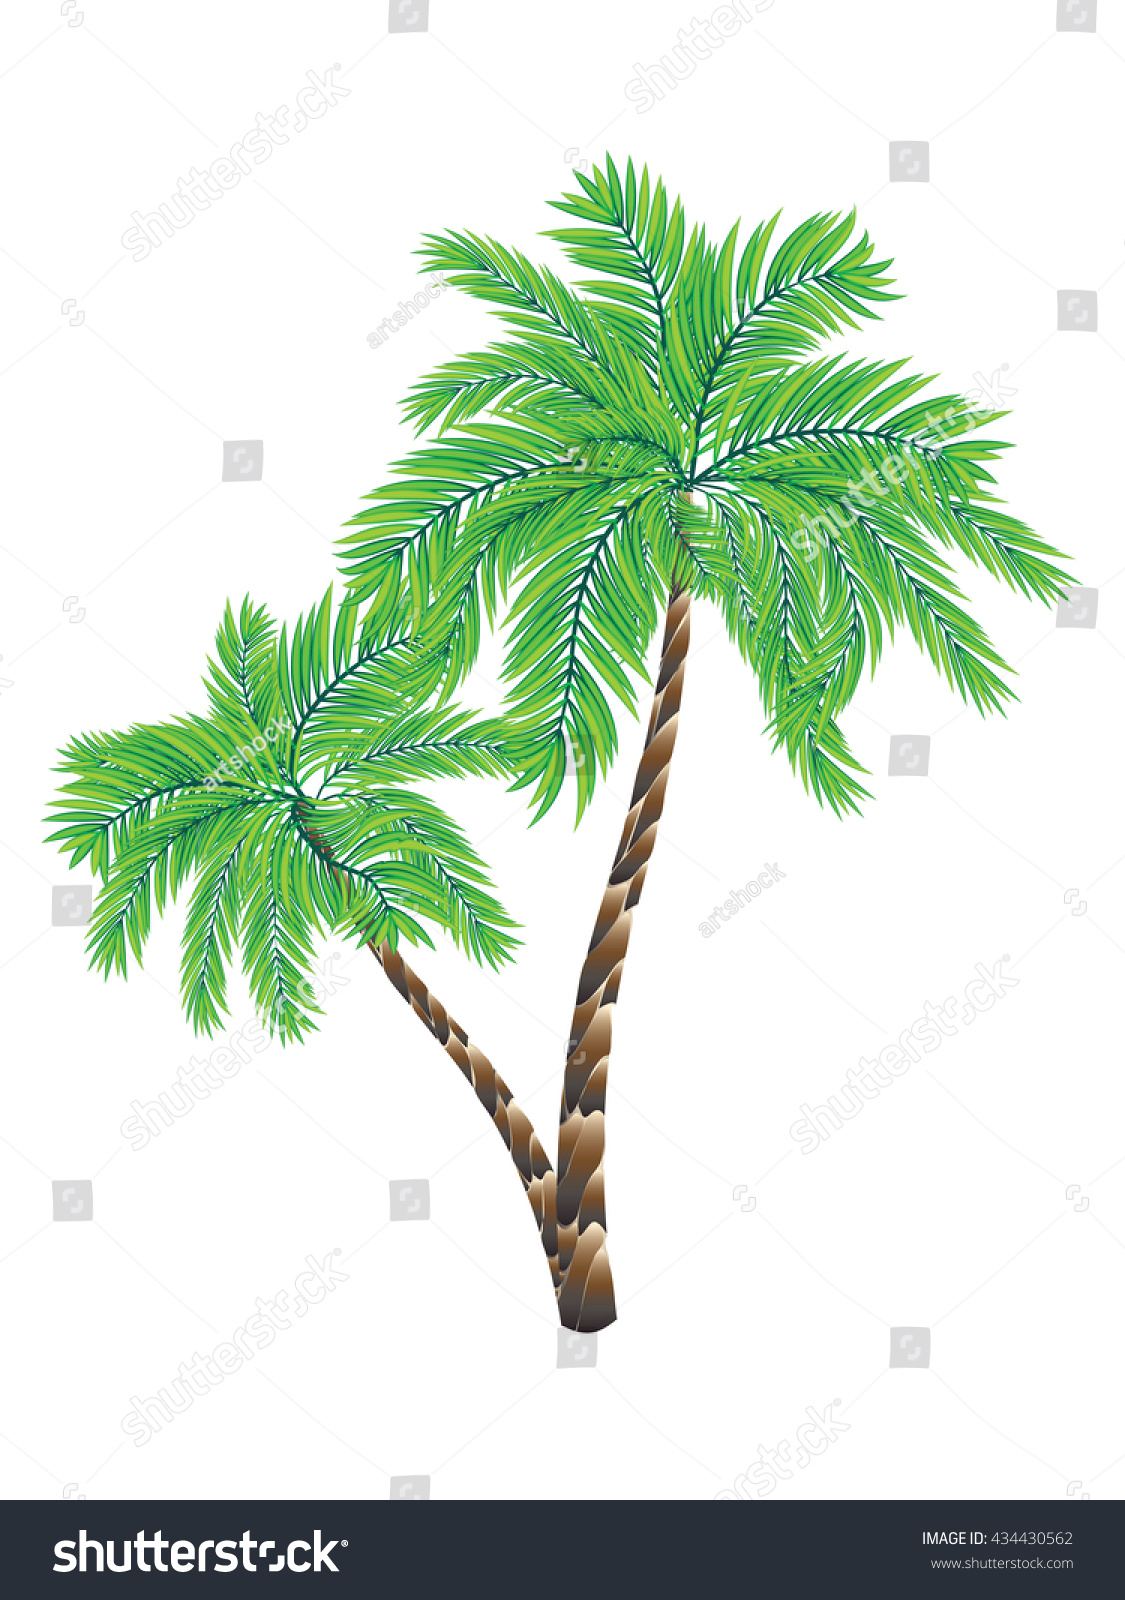 Two Colorful Palm Trees Illustration On Stock Vector HD (Royalty ...